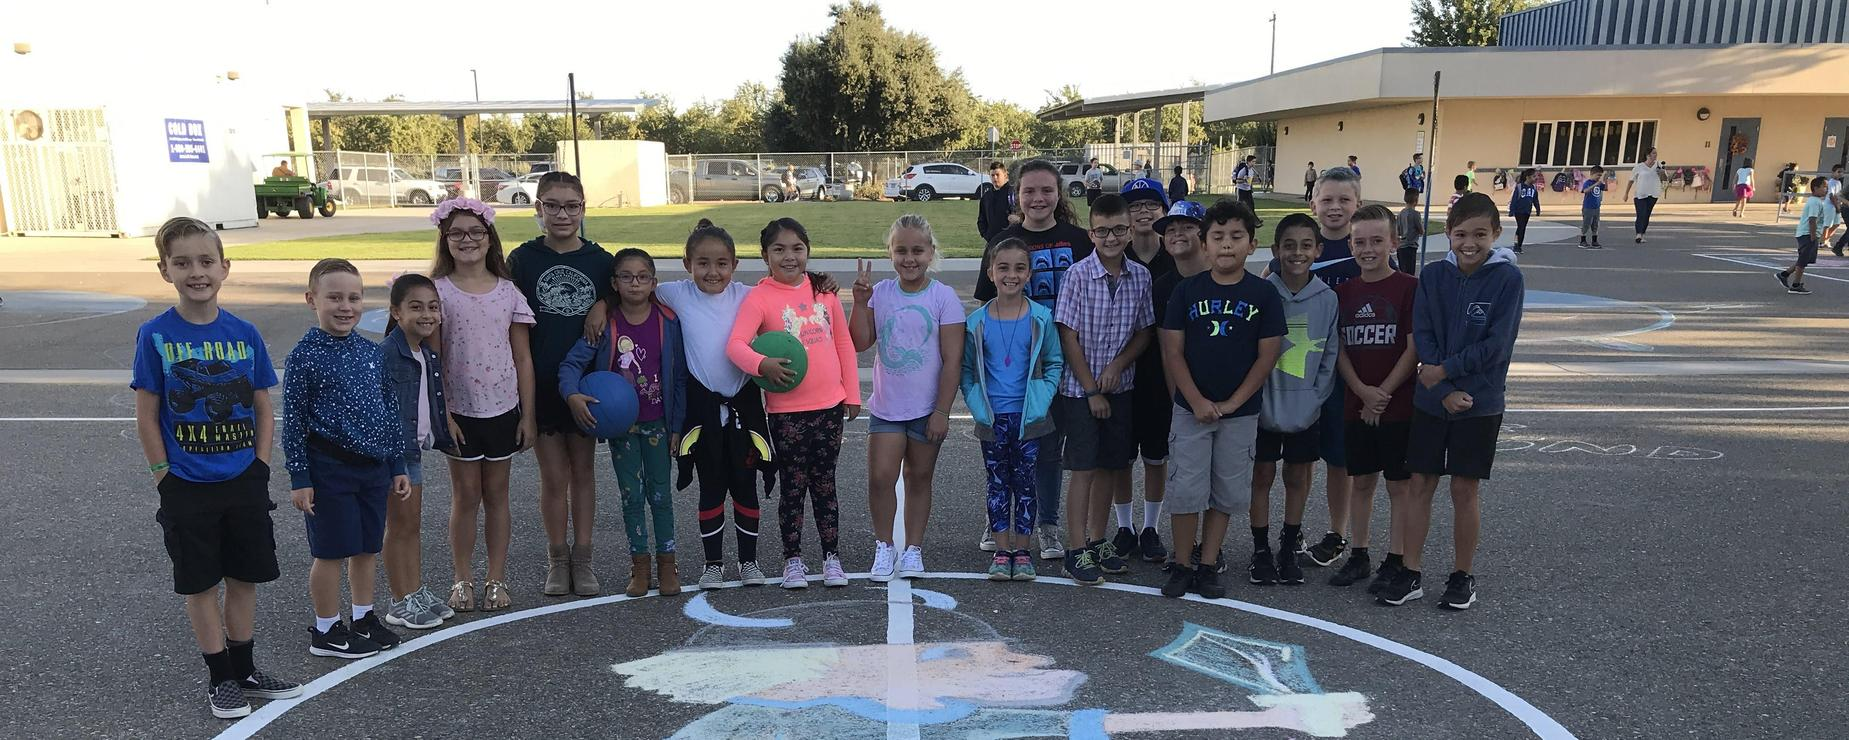 Kids pose with Viking art on basketball court